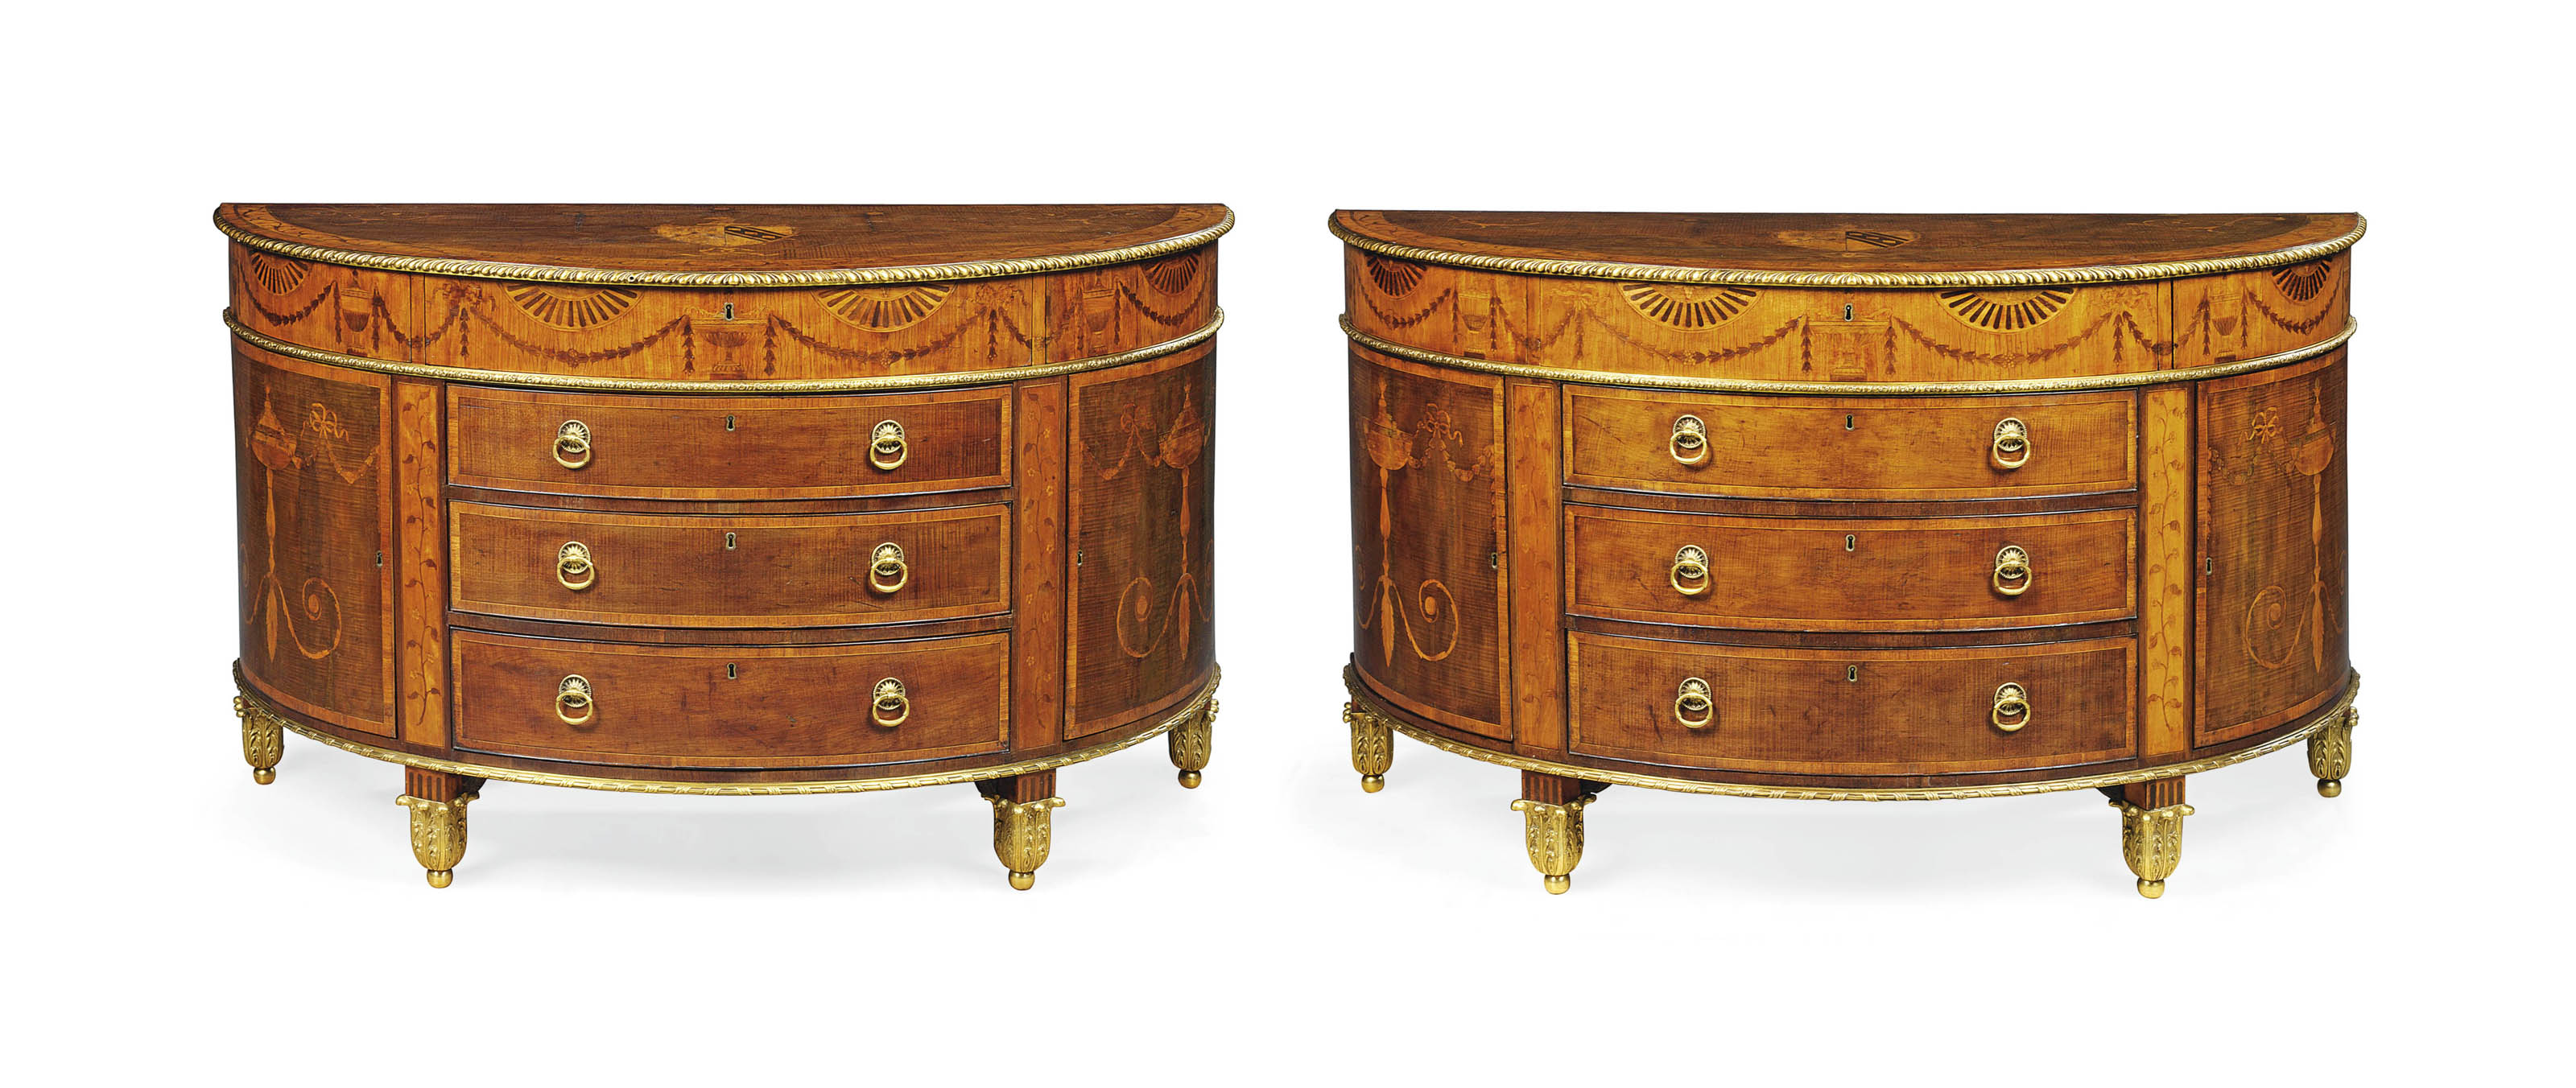 A PAIR OF GEORGE III ORMOLU-MOUNTED SYCAMORE, SATINWOOD AND MARQUETRY SEMI-ELLIPTICAL COMMODES